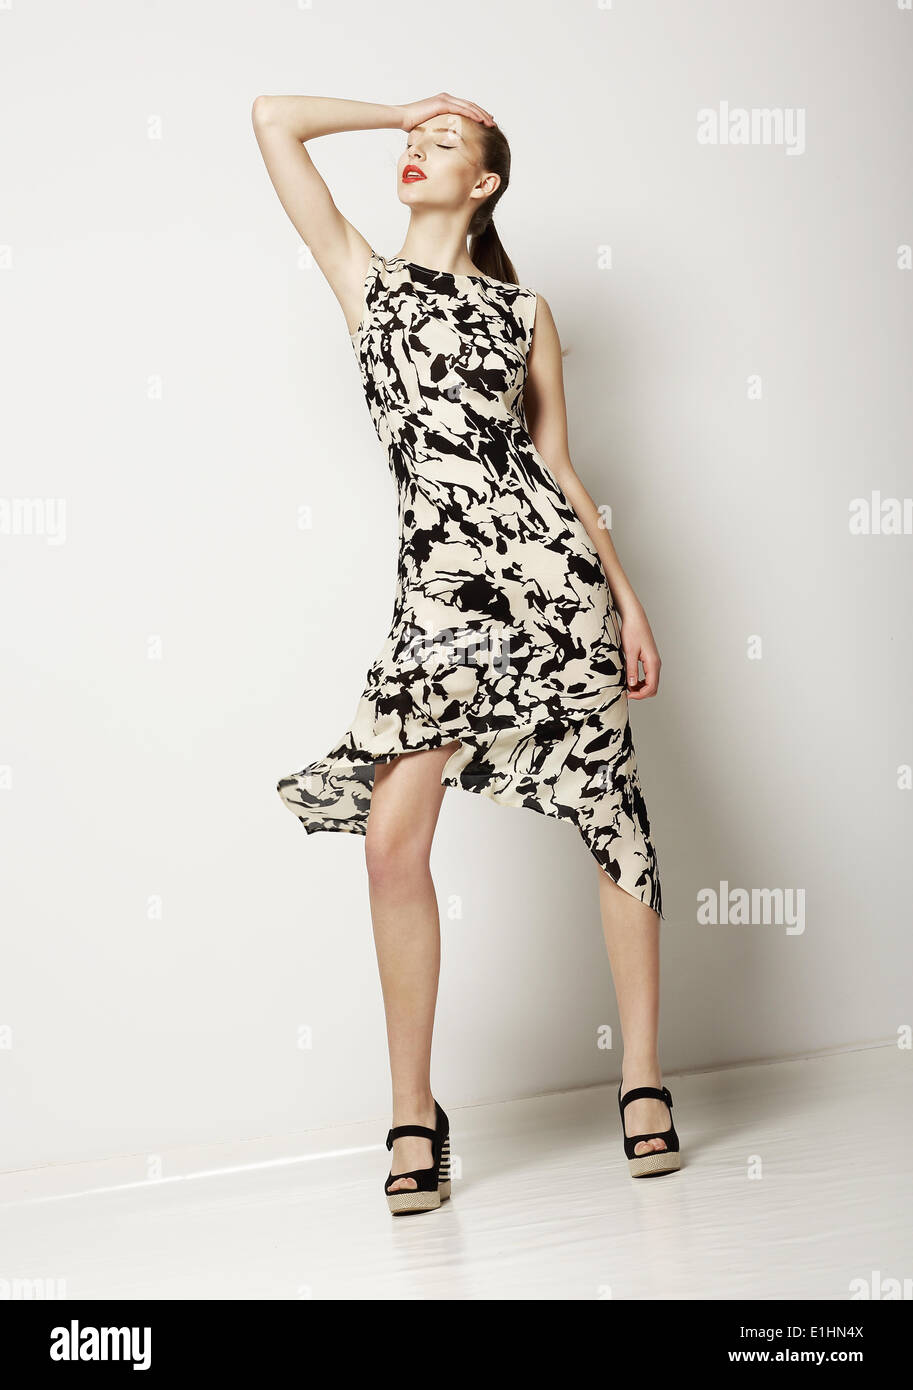 Fashion Woman in Light Spotty Dress. Design of Contemporary Apparel - Stock Image